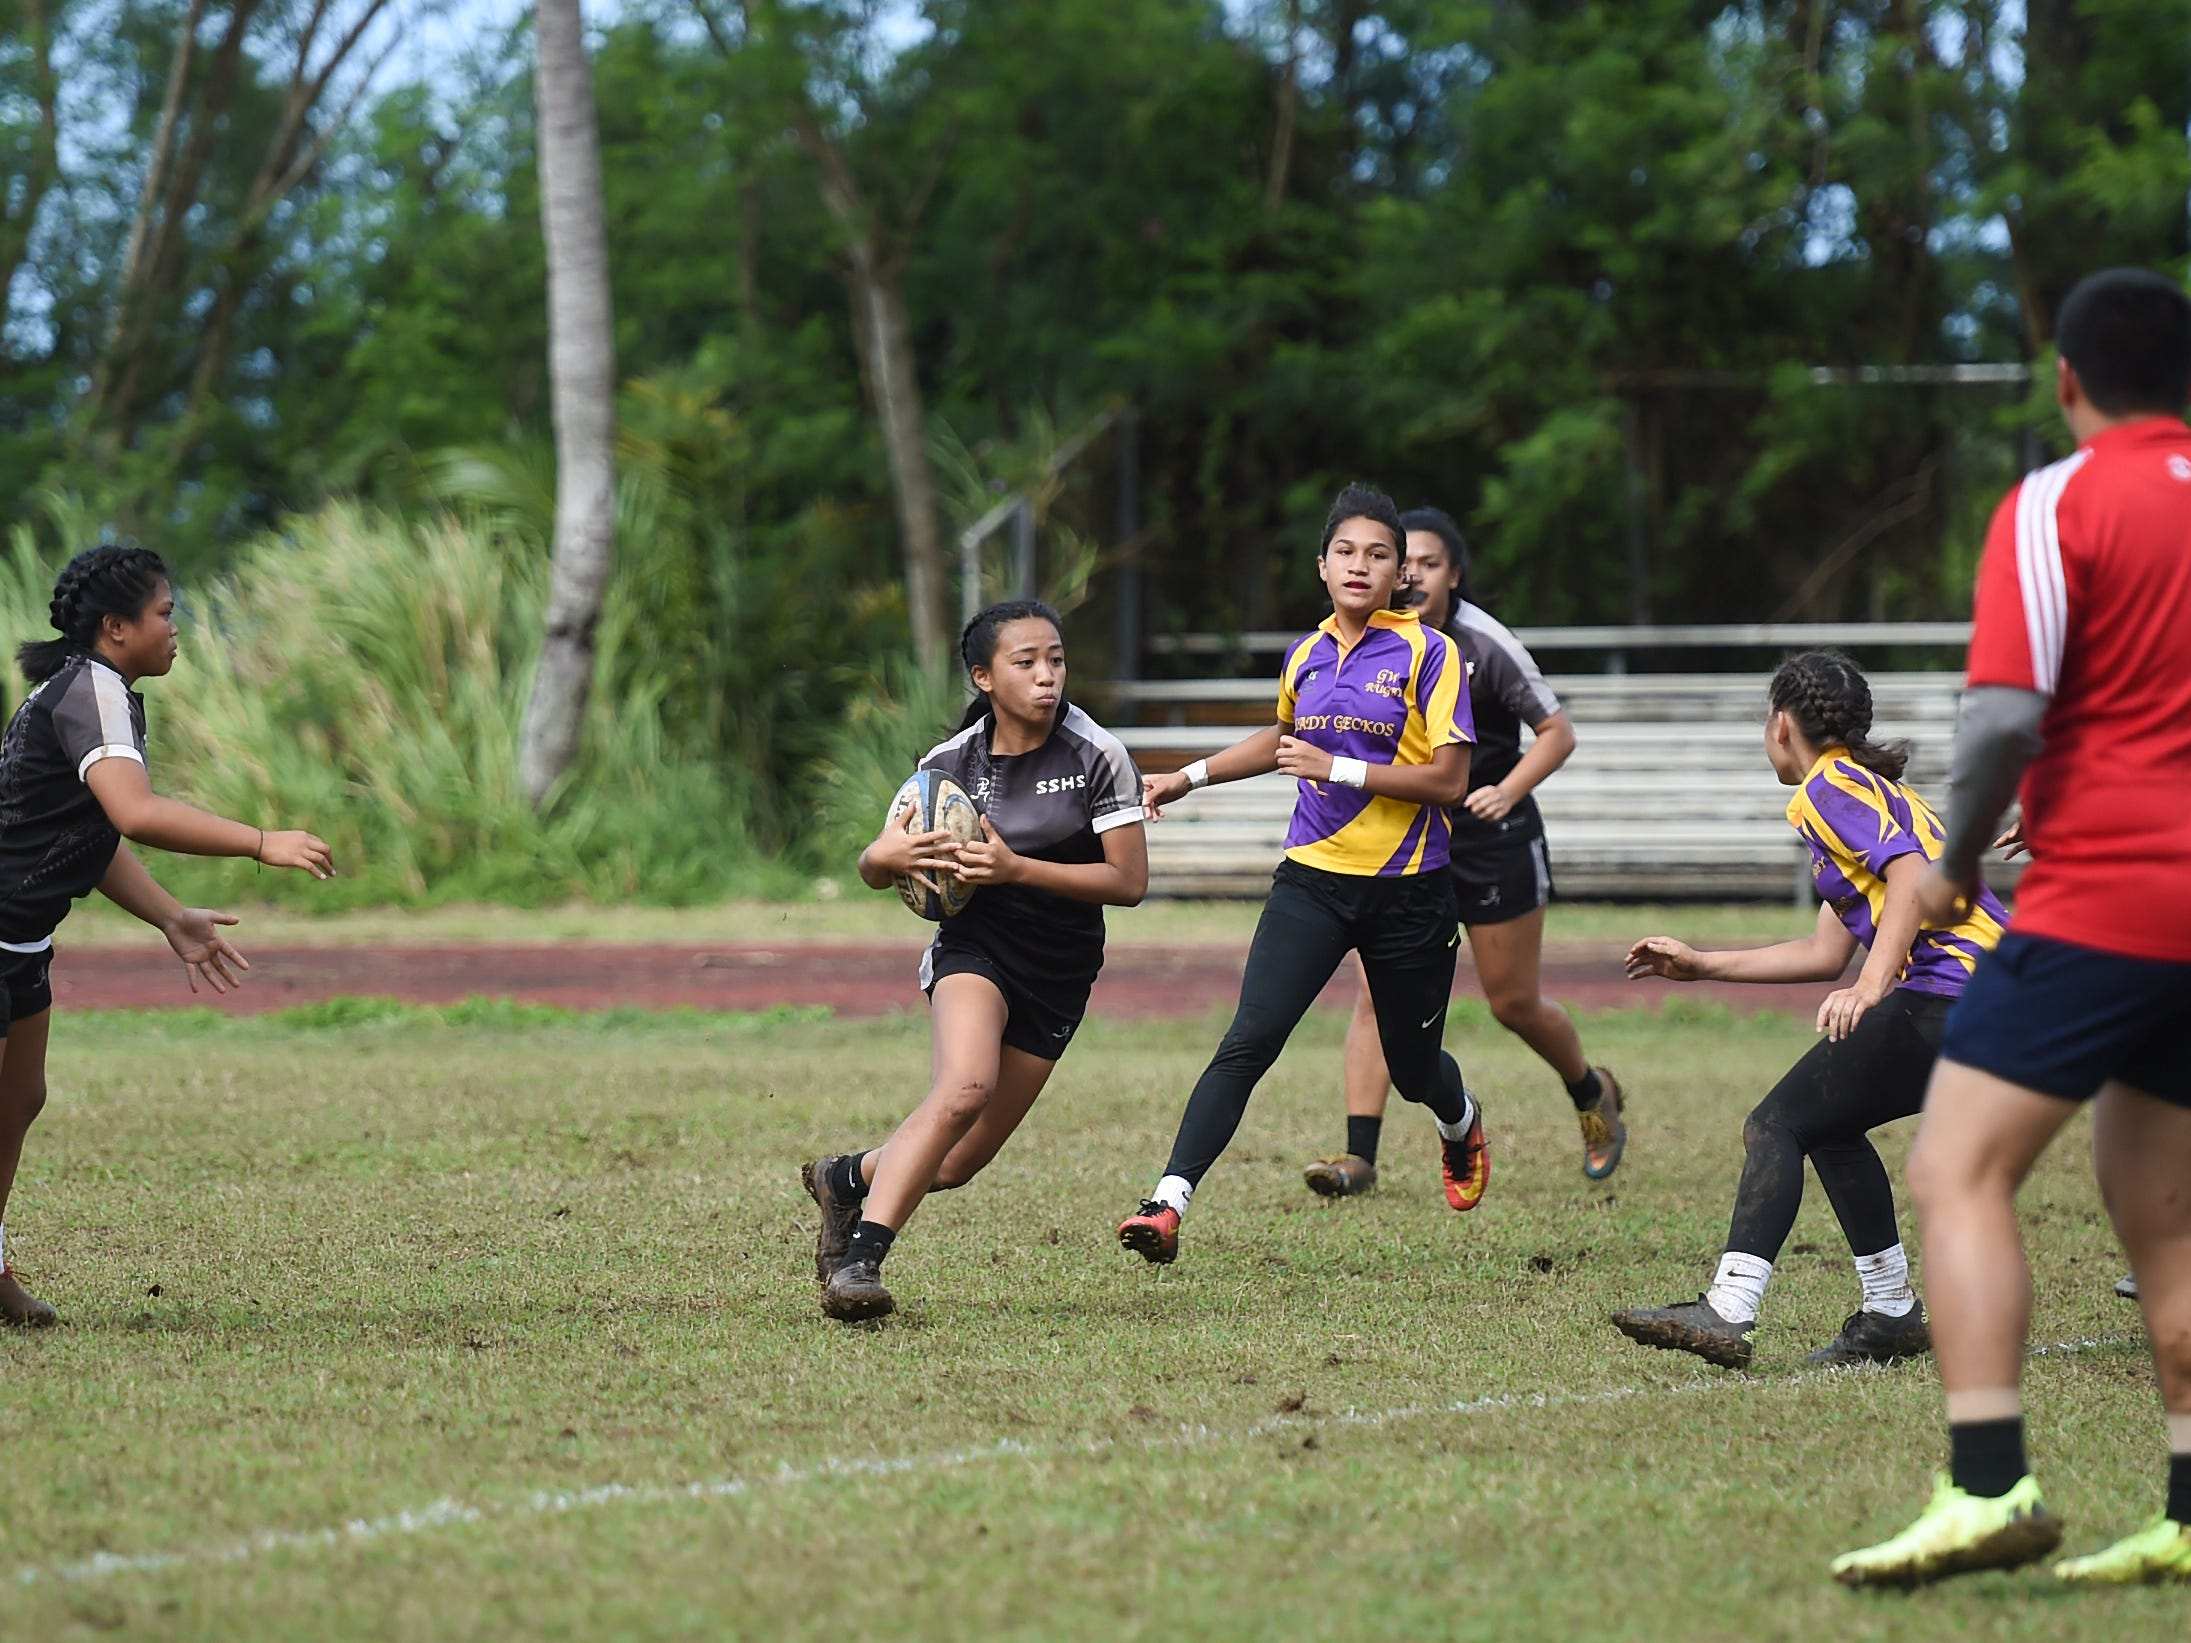 Simon Sanchez player Sherald Alvarez runs the ball against the George Washington Geckoa for their IIAAG Girls' Rugby match at the Southern High School Field, Feb. 9, 2019.